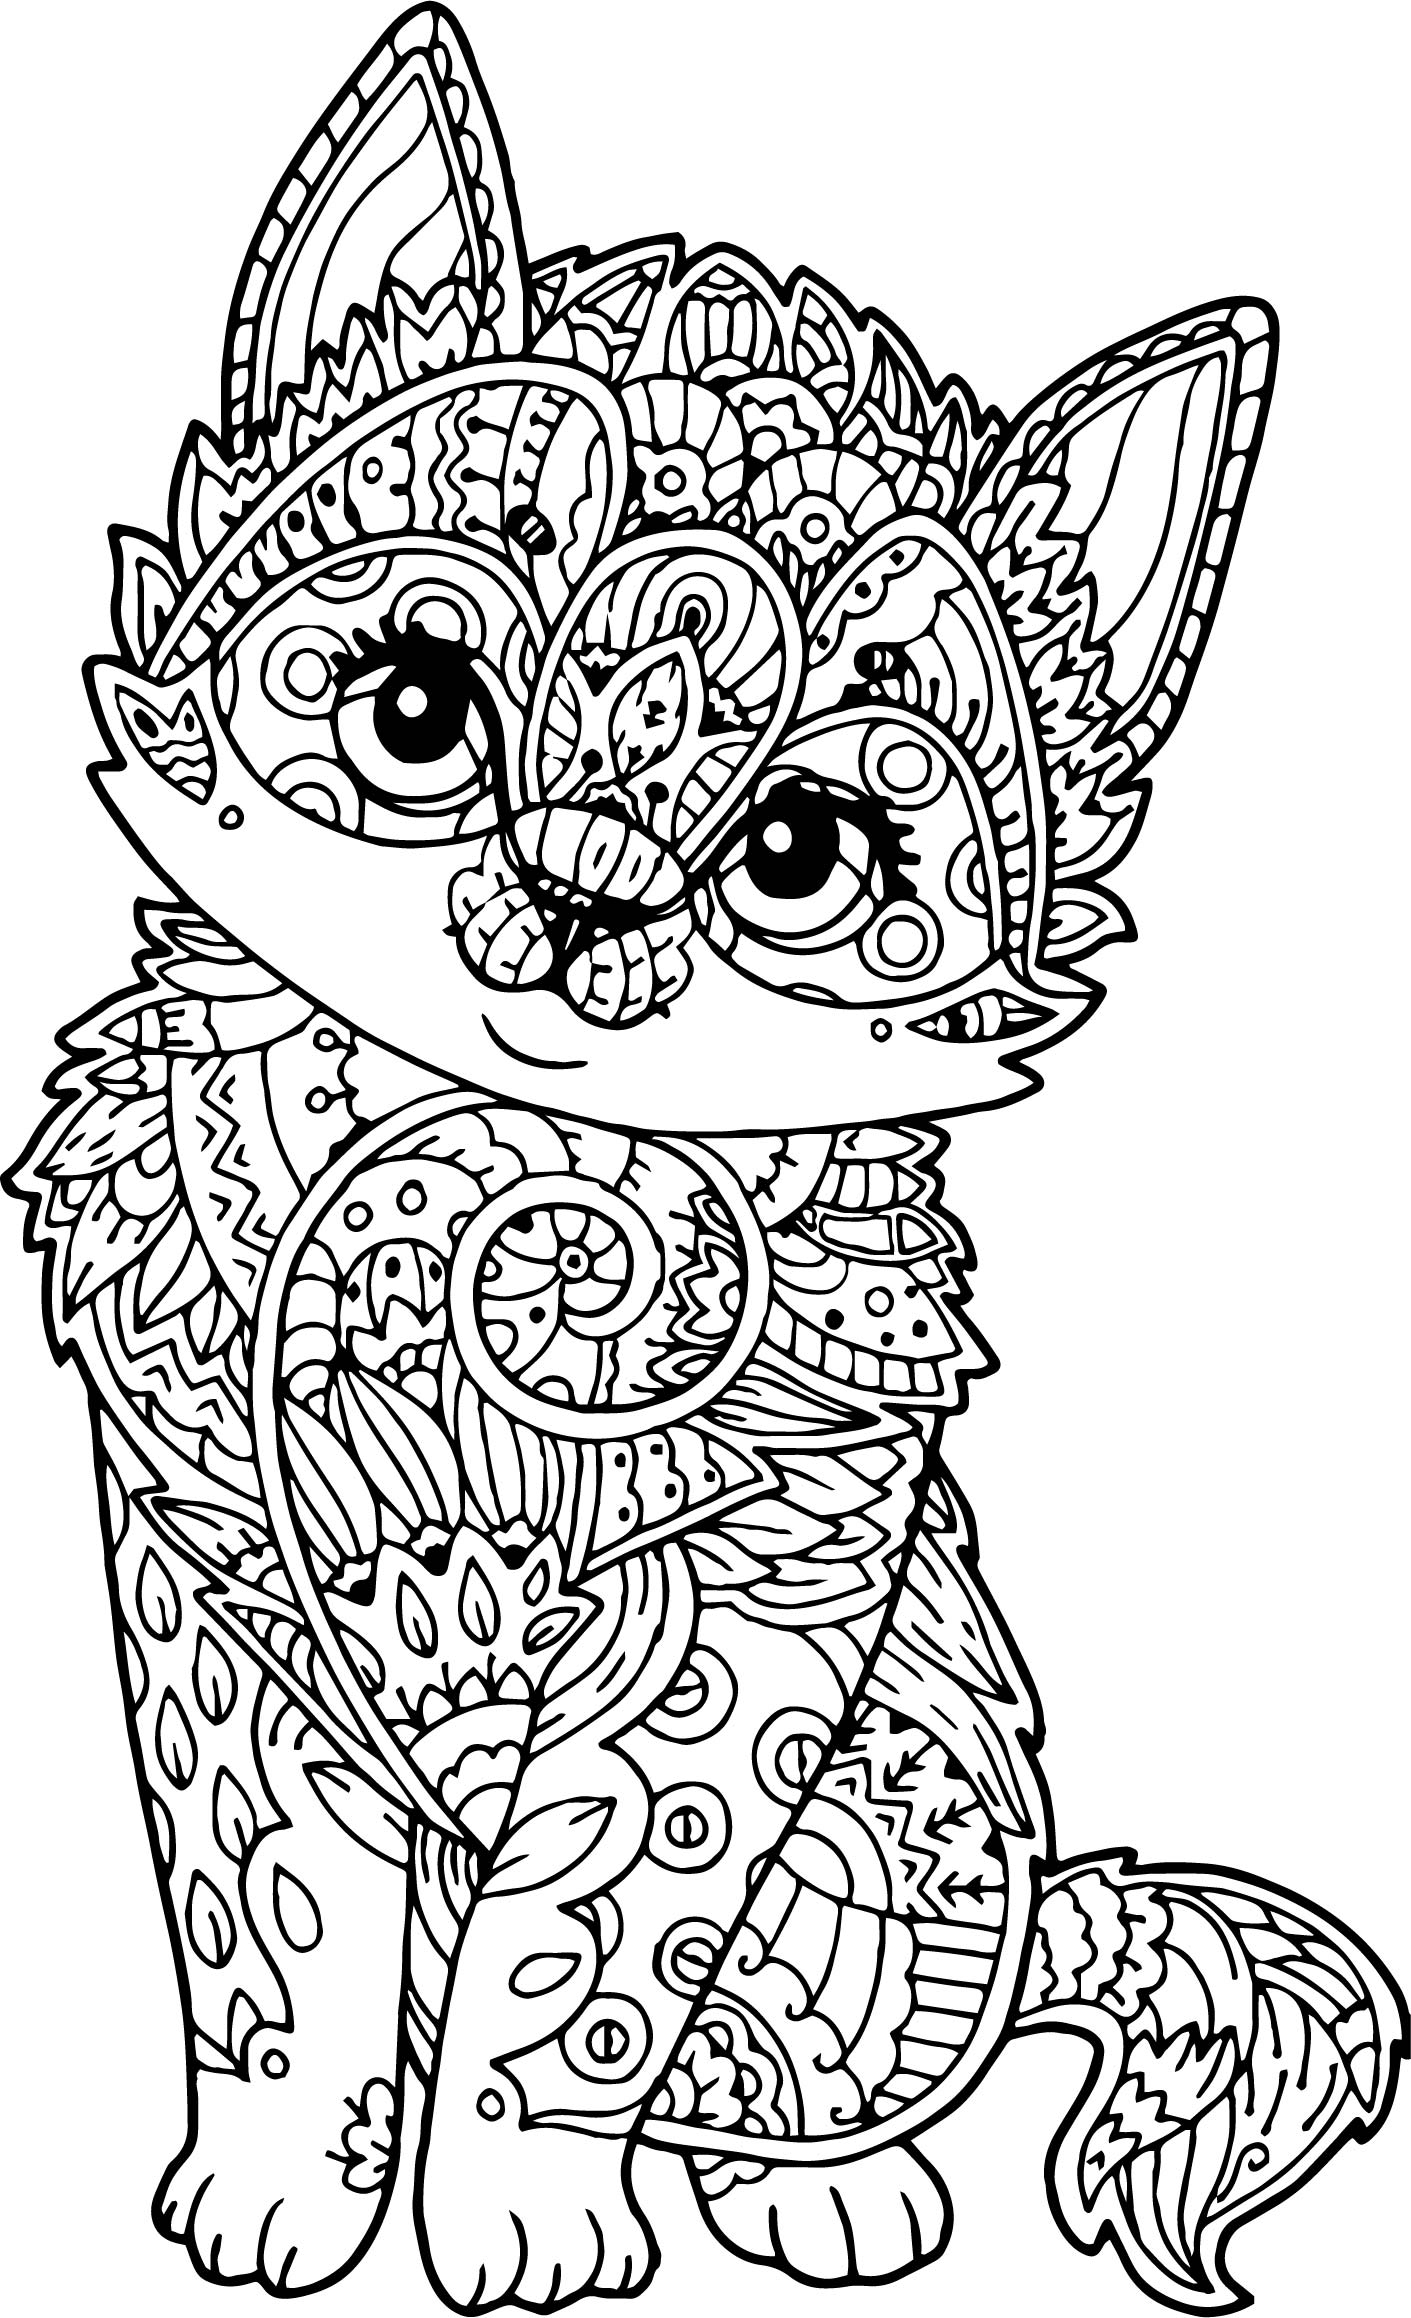 Intricate Cat Coloring Pages : Puppy pages for adults coloring